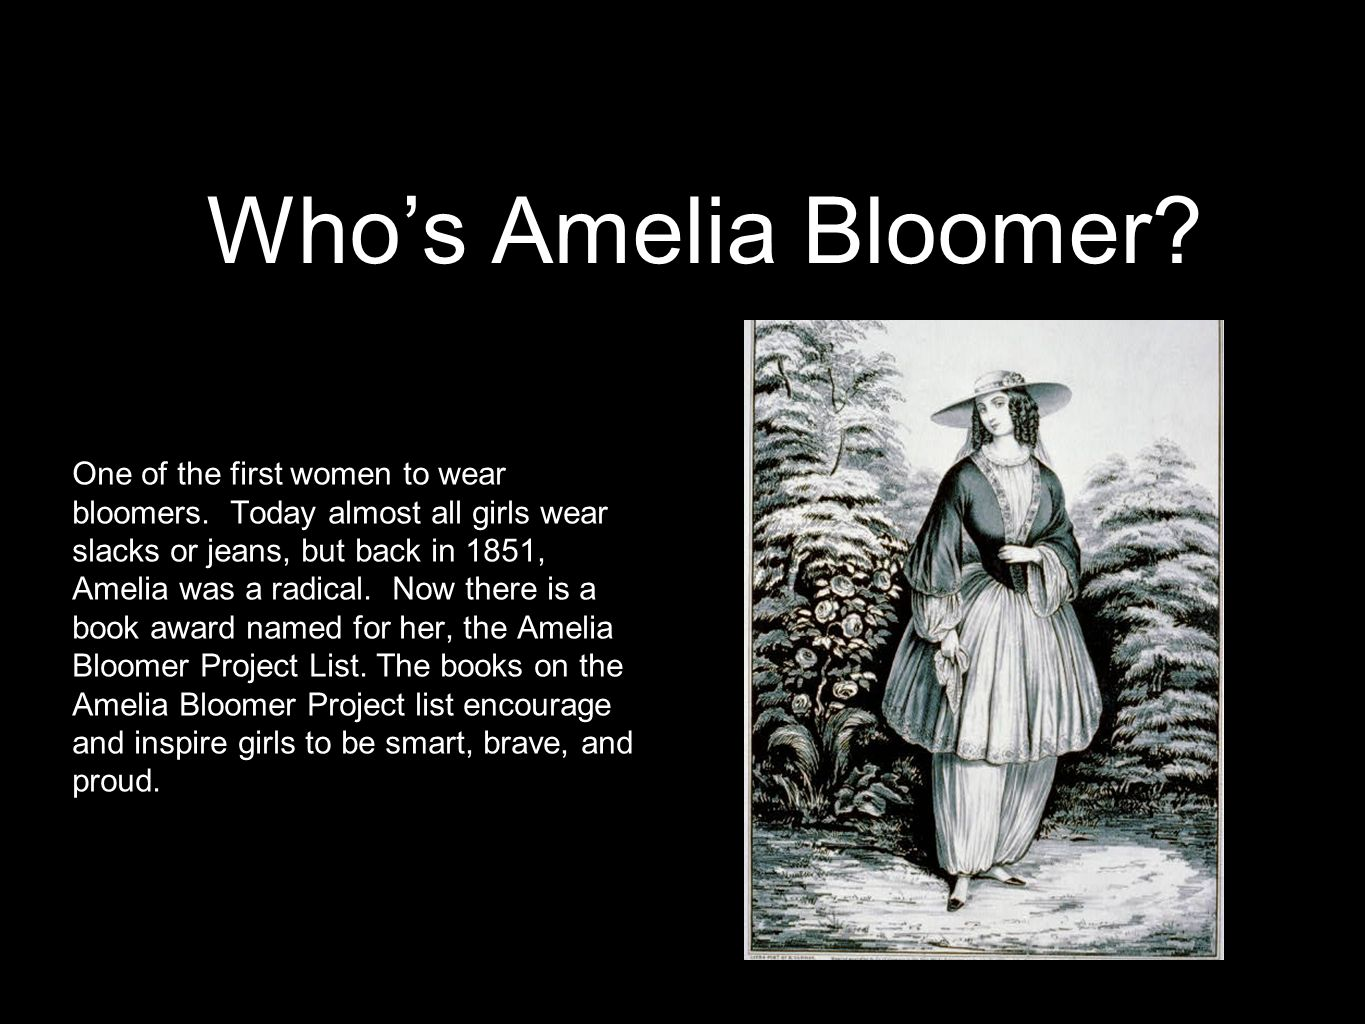 Who are bloomers named for?